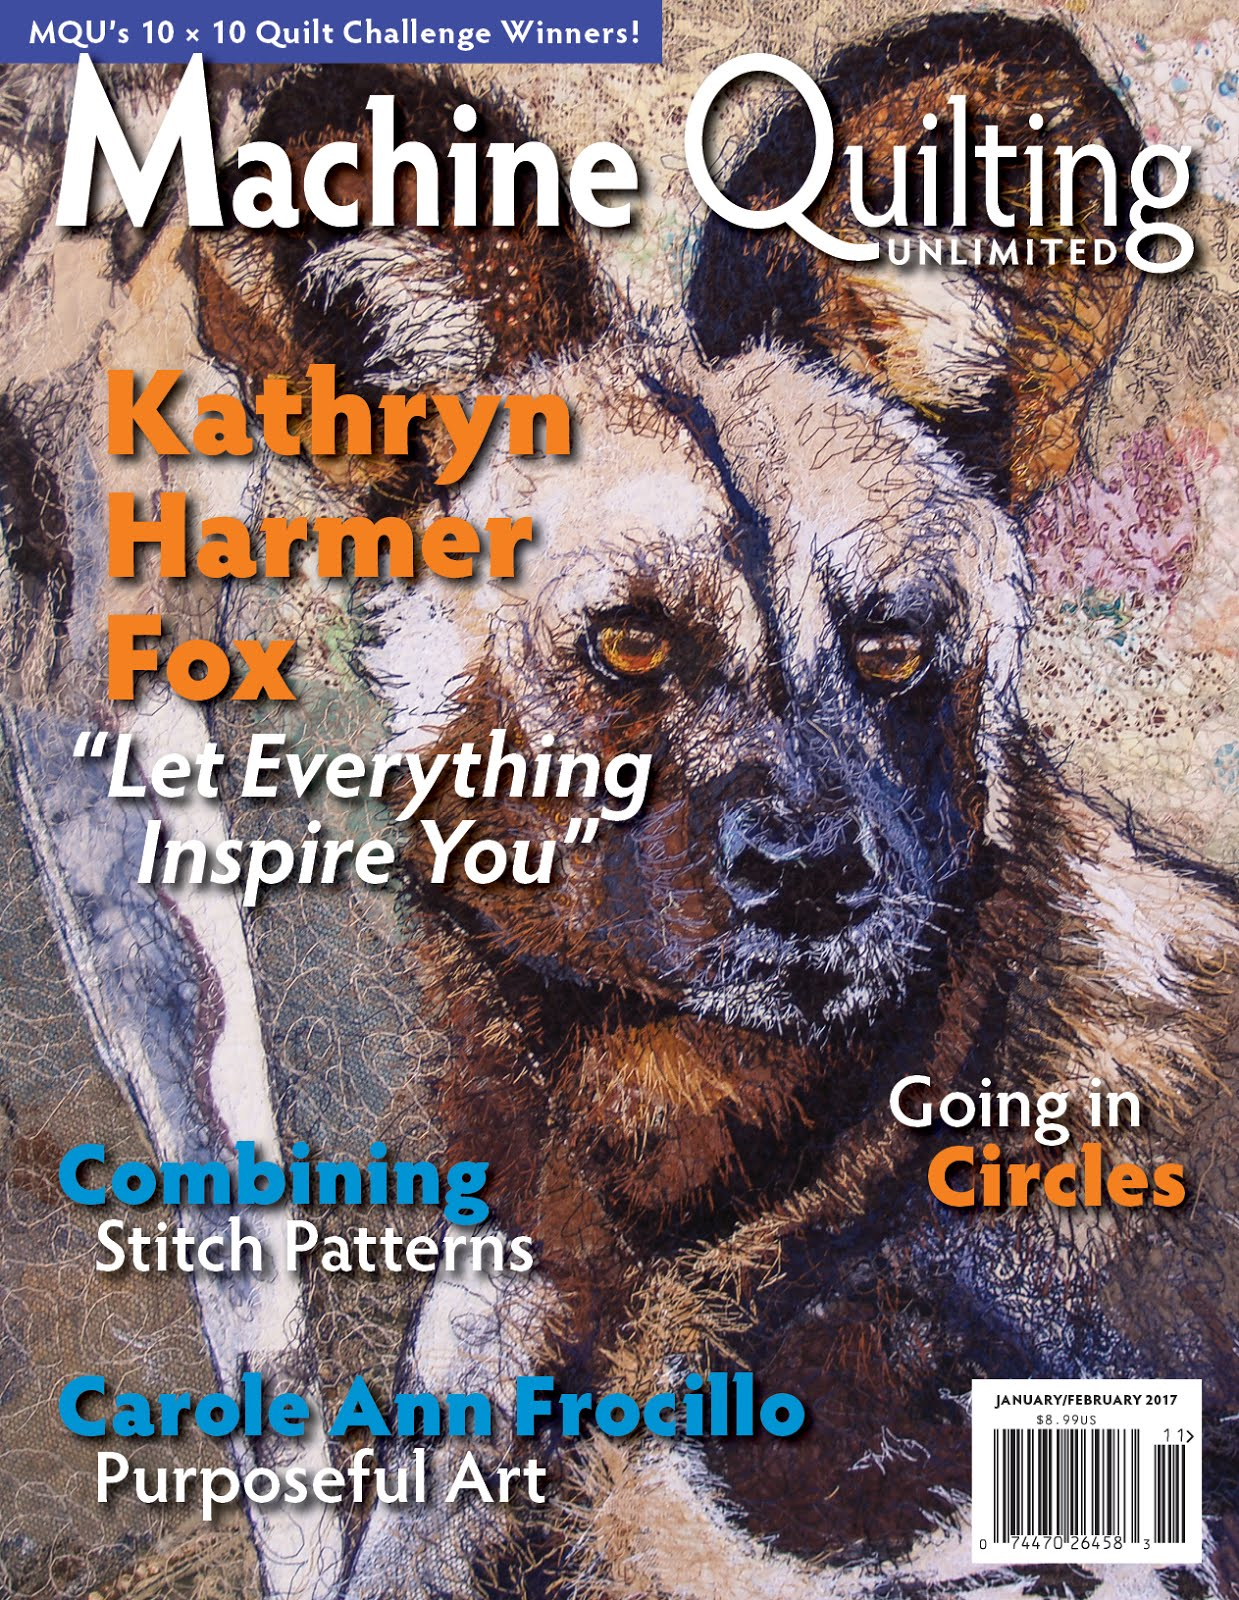 Machine Quilting Unlimited Jan/Feb 2017